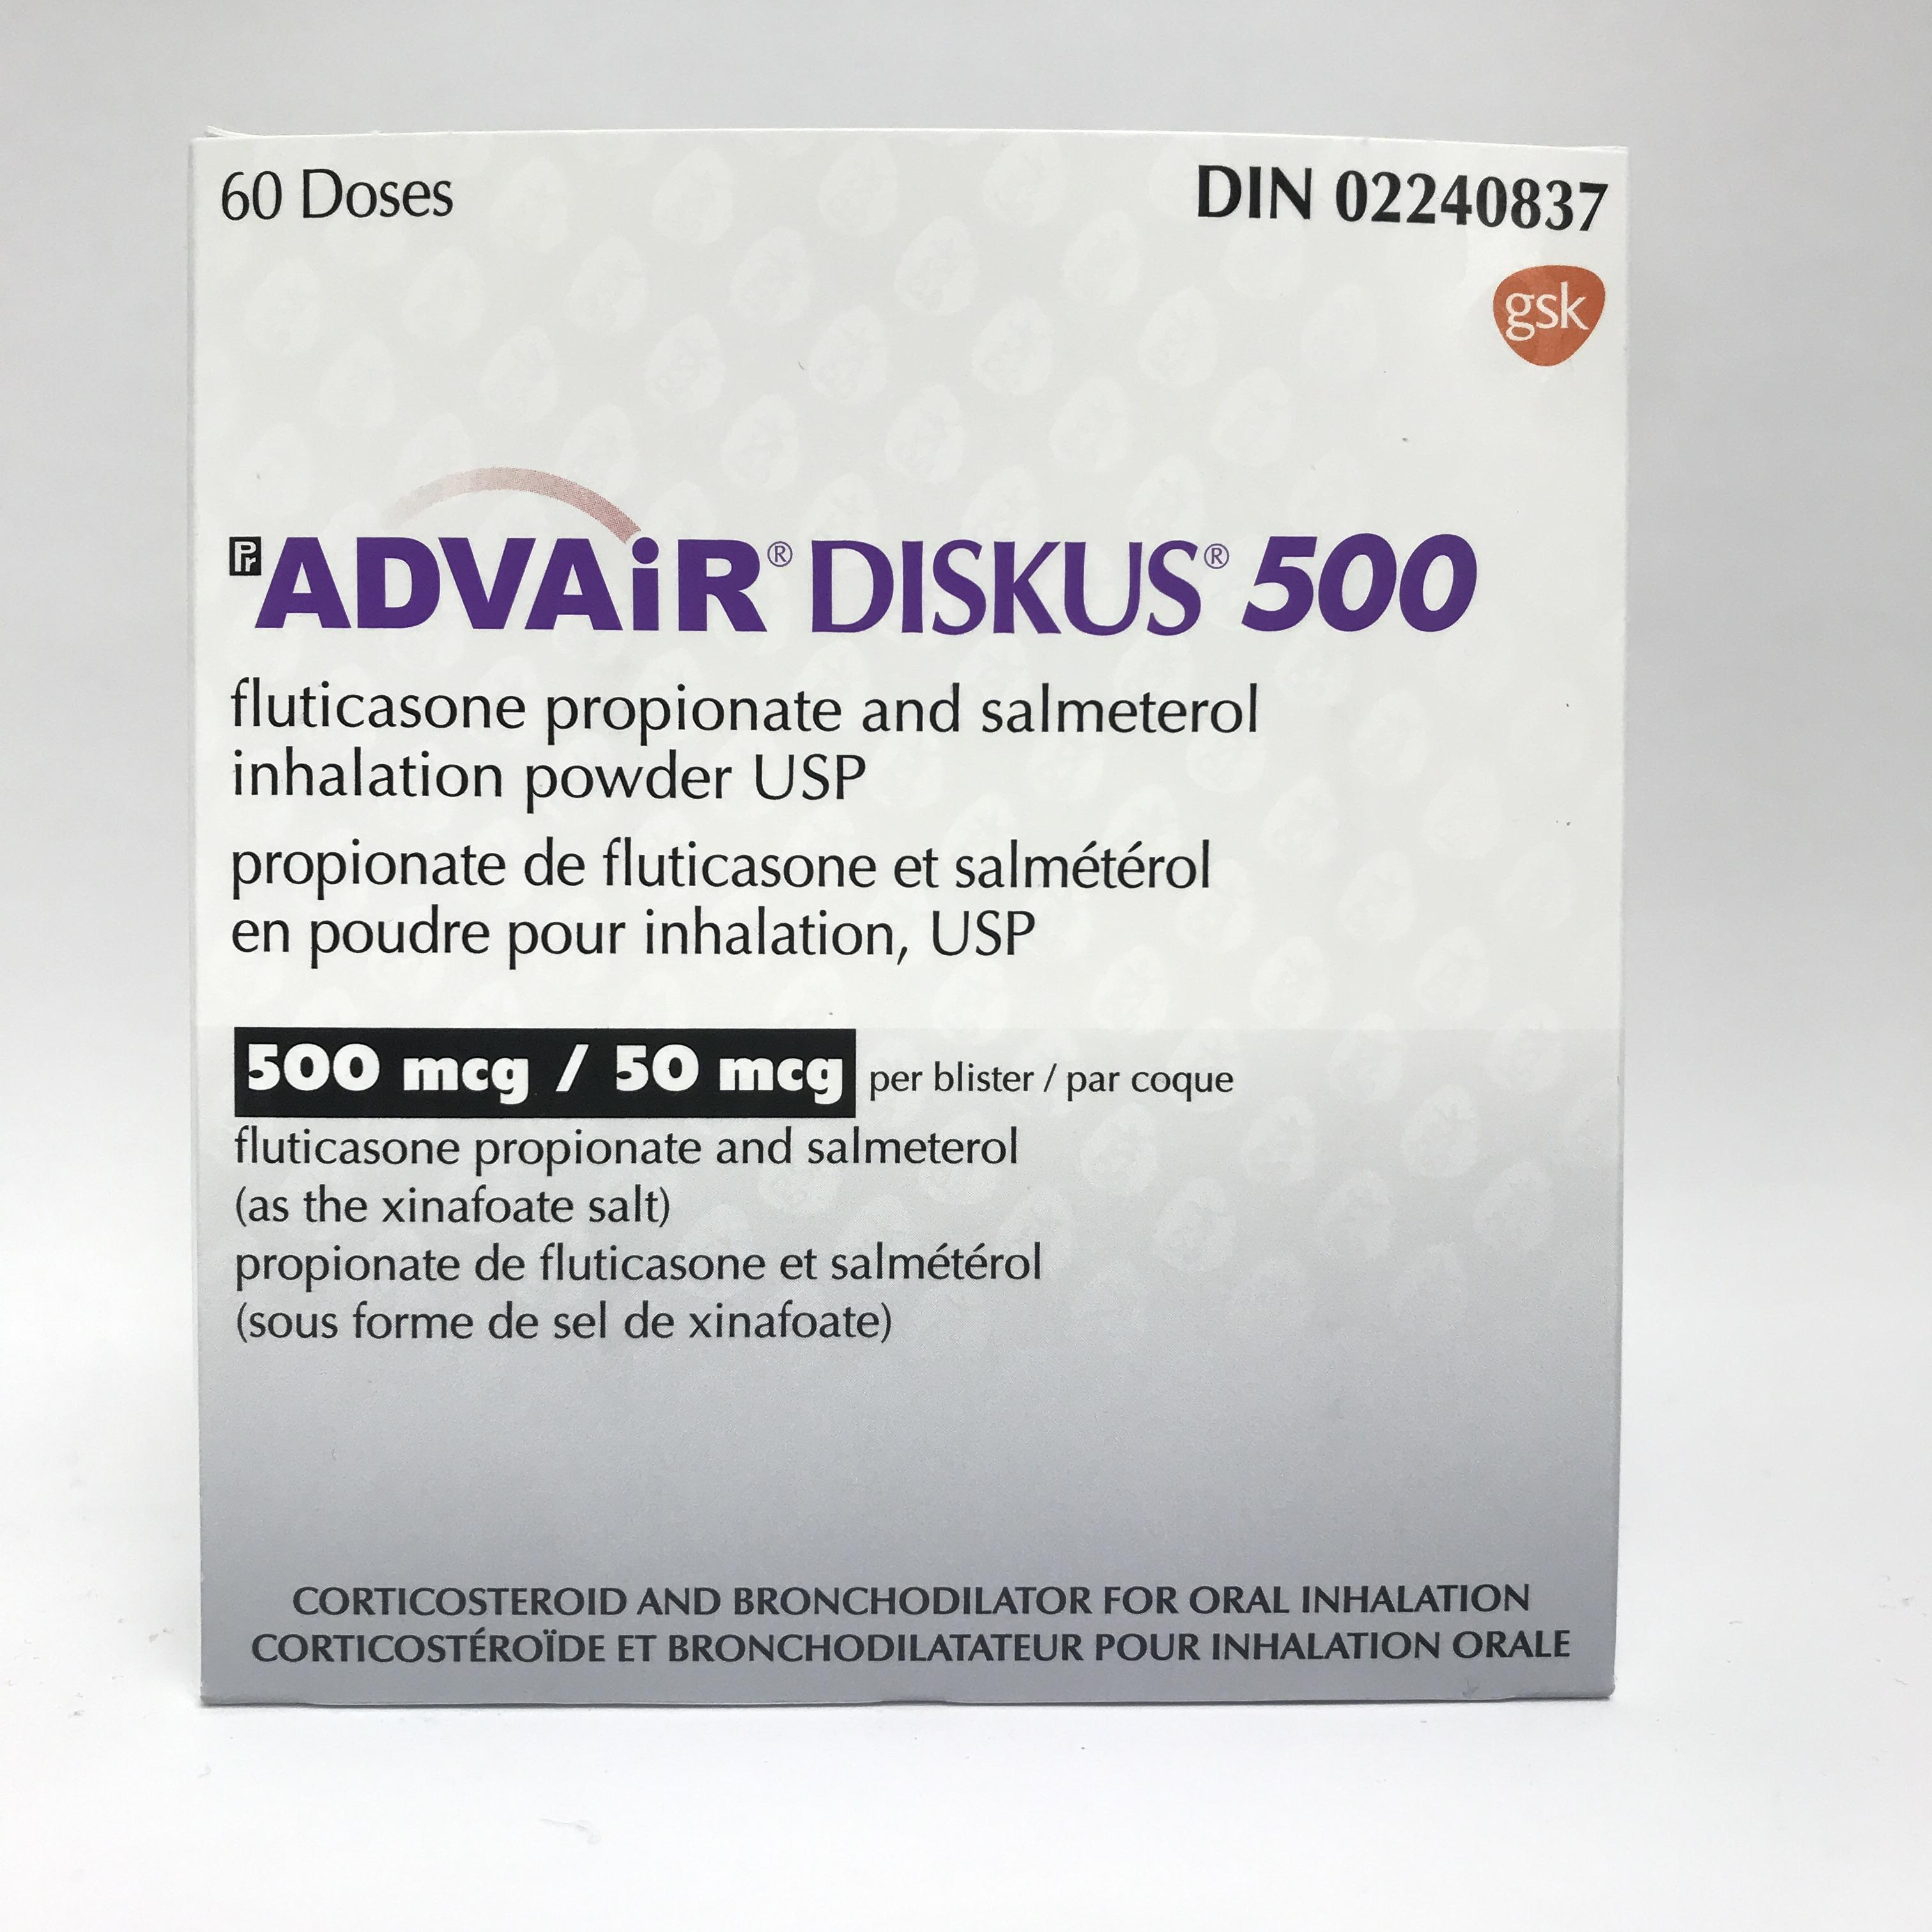 Buy Advair Diskus 500mcg 50mcg From Canada Cloud Pharmacy The Most Trusted Canadian Pharmacy